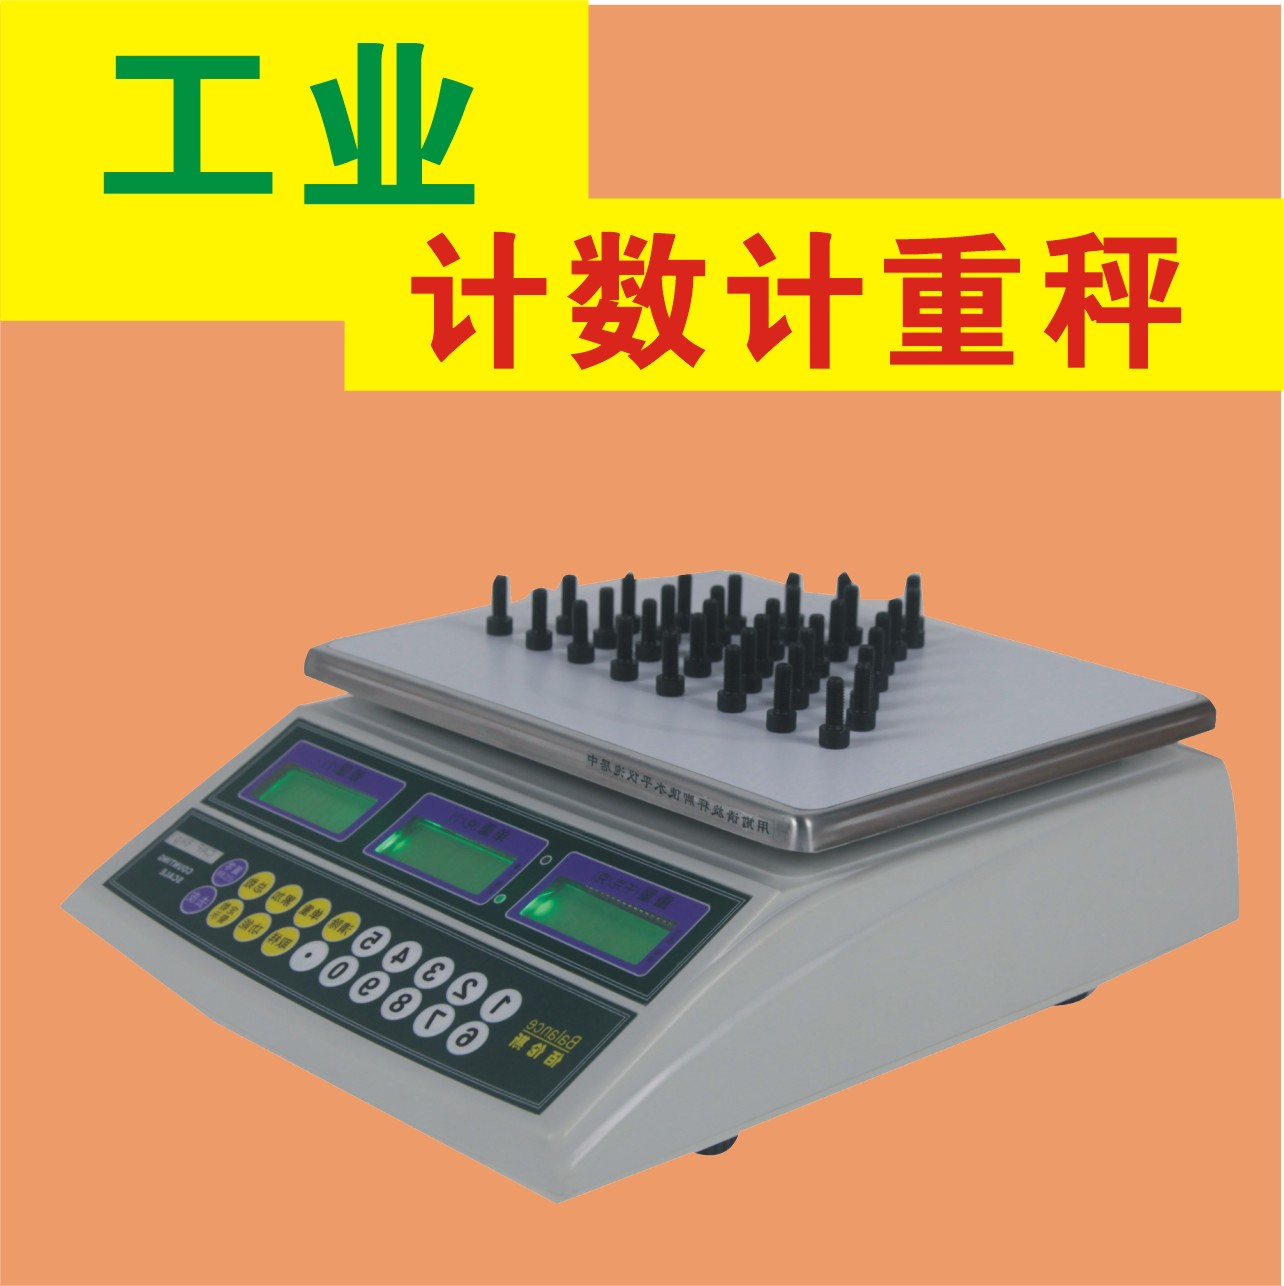 High precision industrial counting tables scale electronic counting scale electronic weighing scales 3/6/15/30 kg precision 0.1g